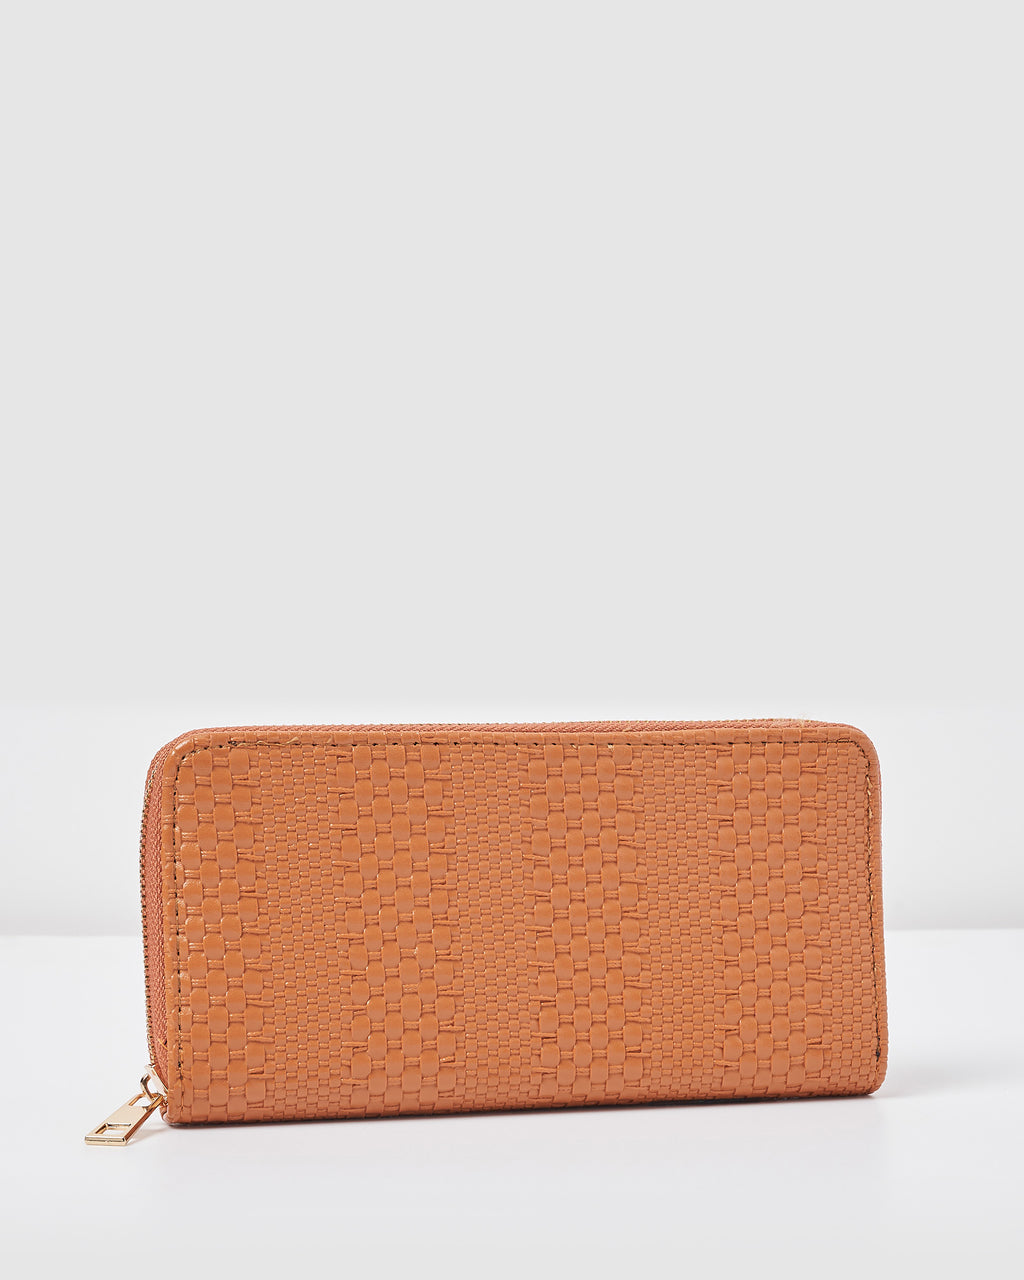 Izoa Tara Wallet Tan